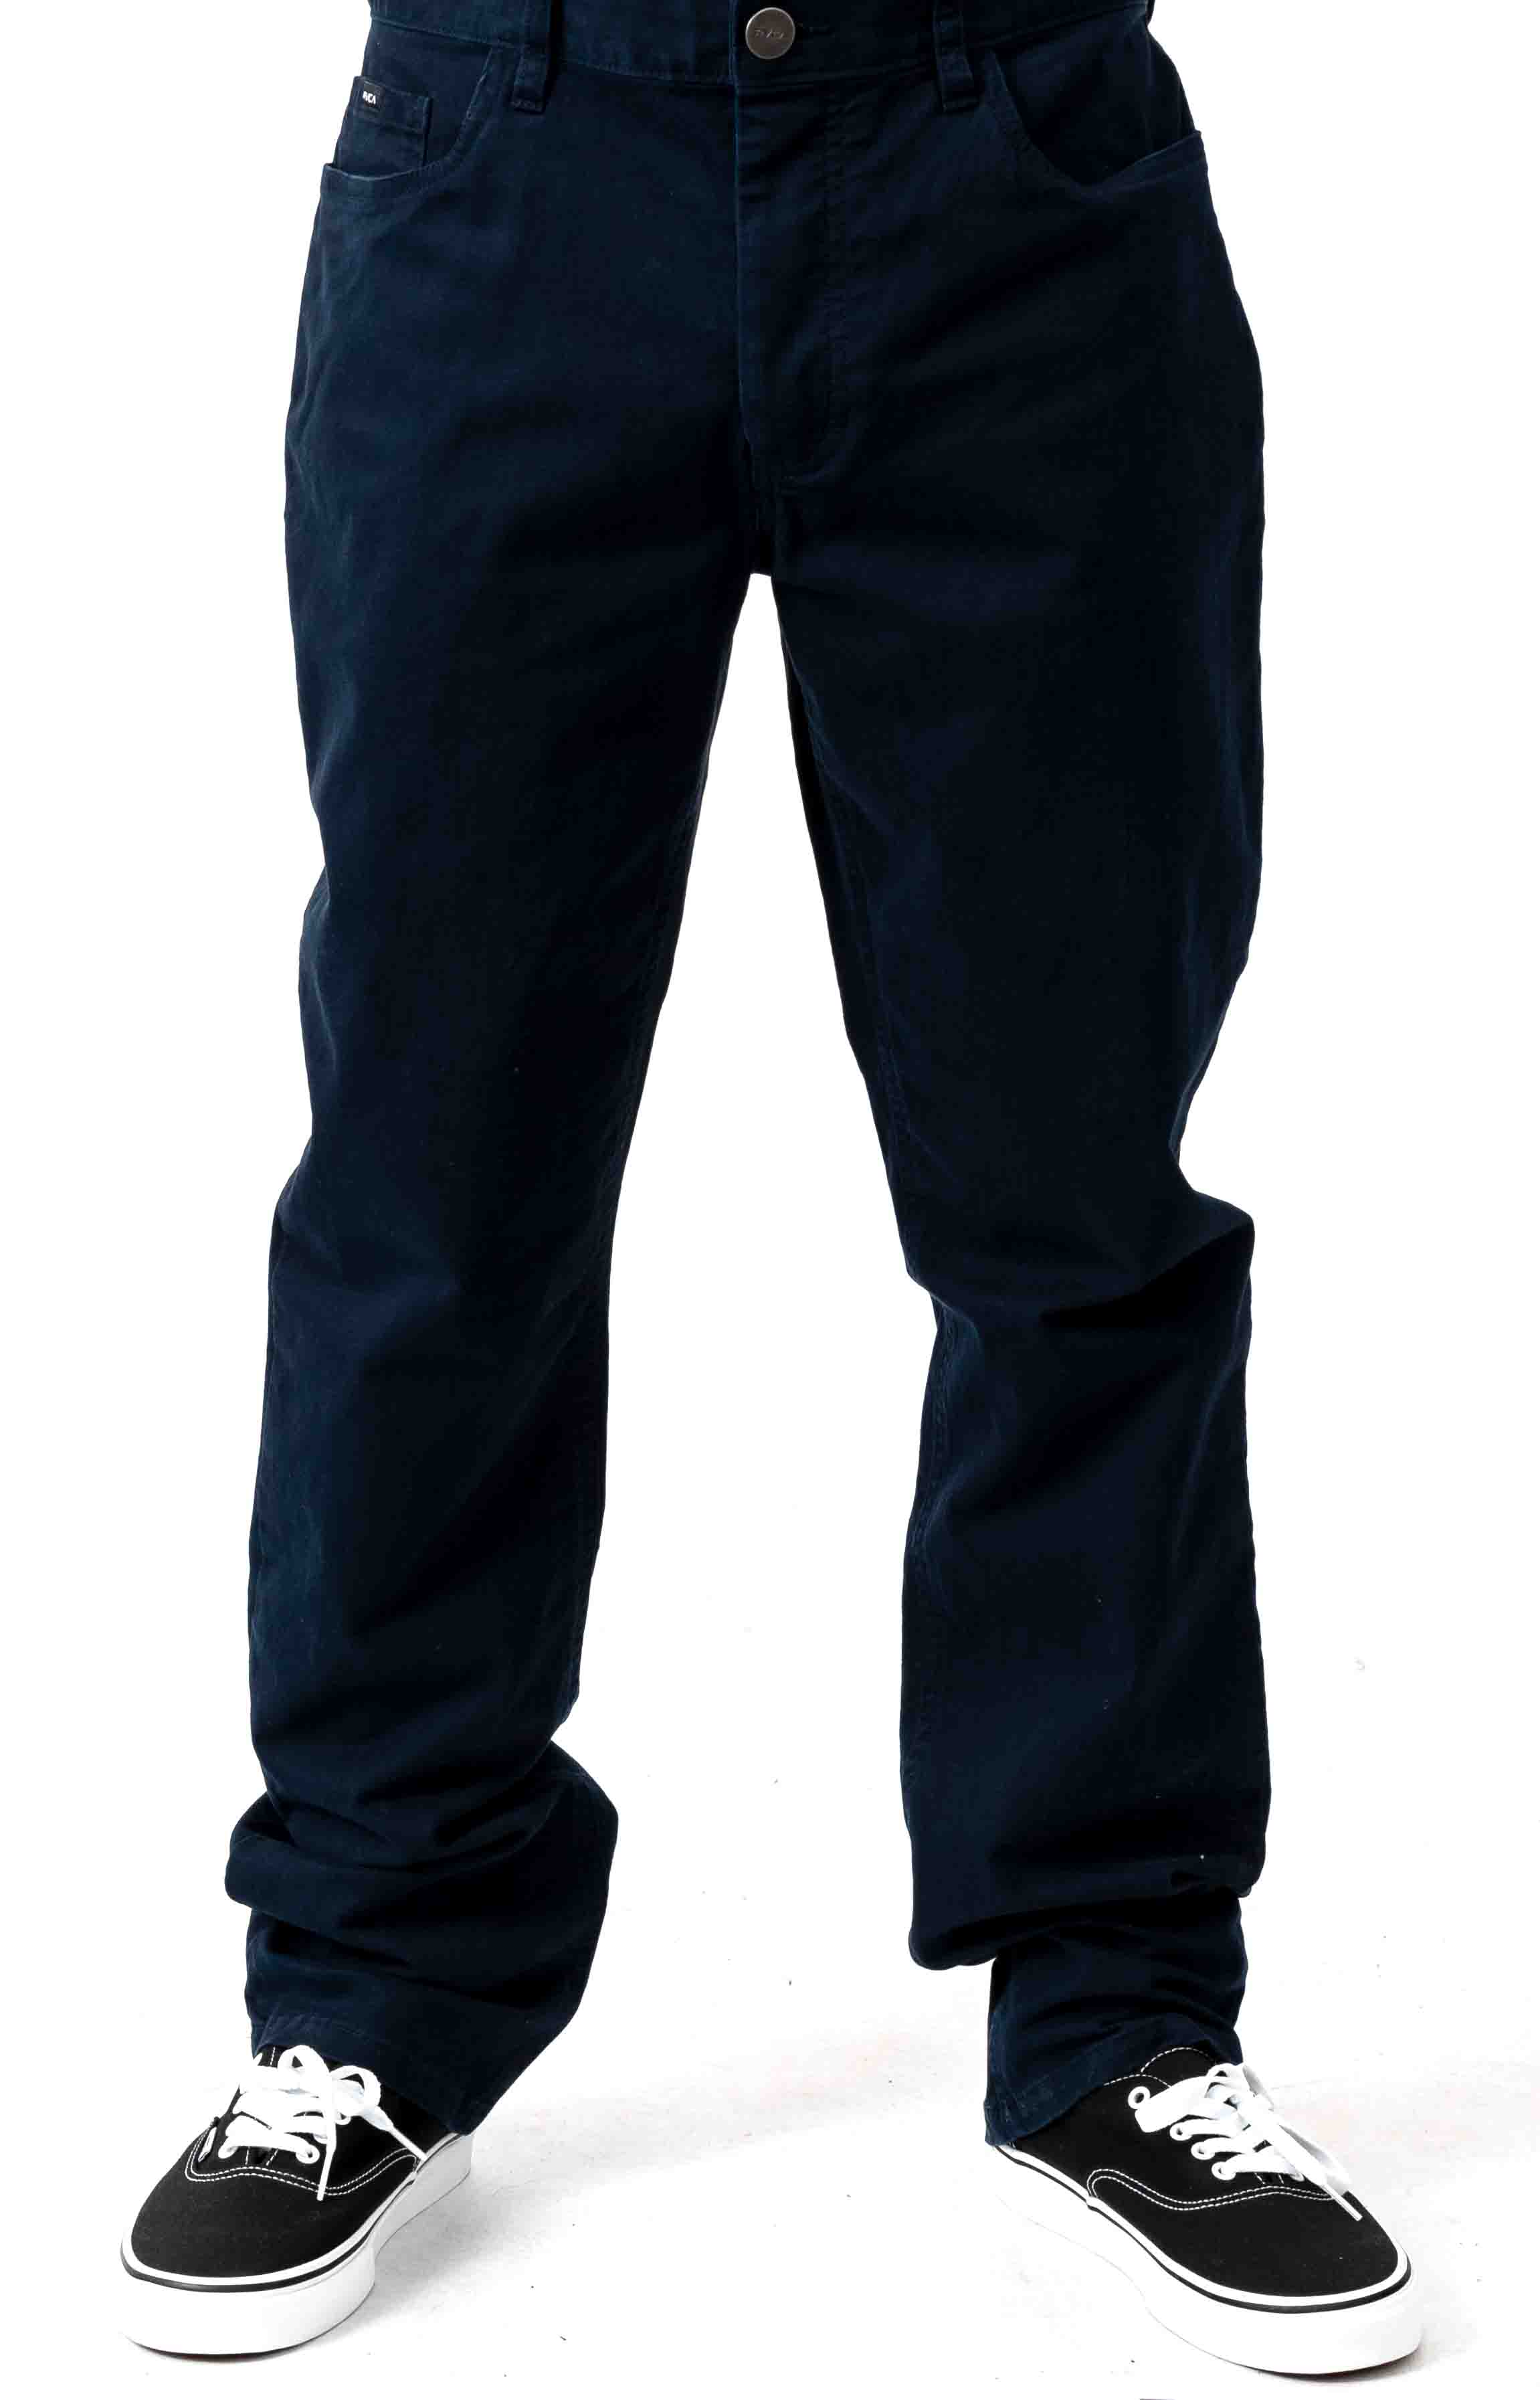 Week-End 5 Pocket Pants - Navy Marine  2